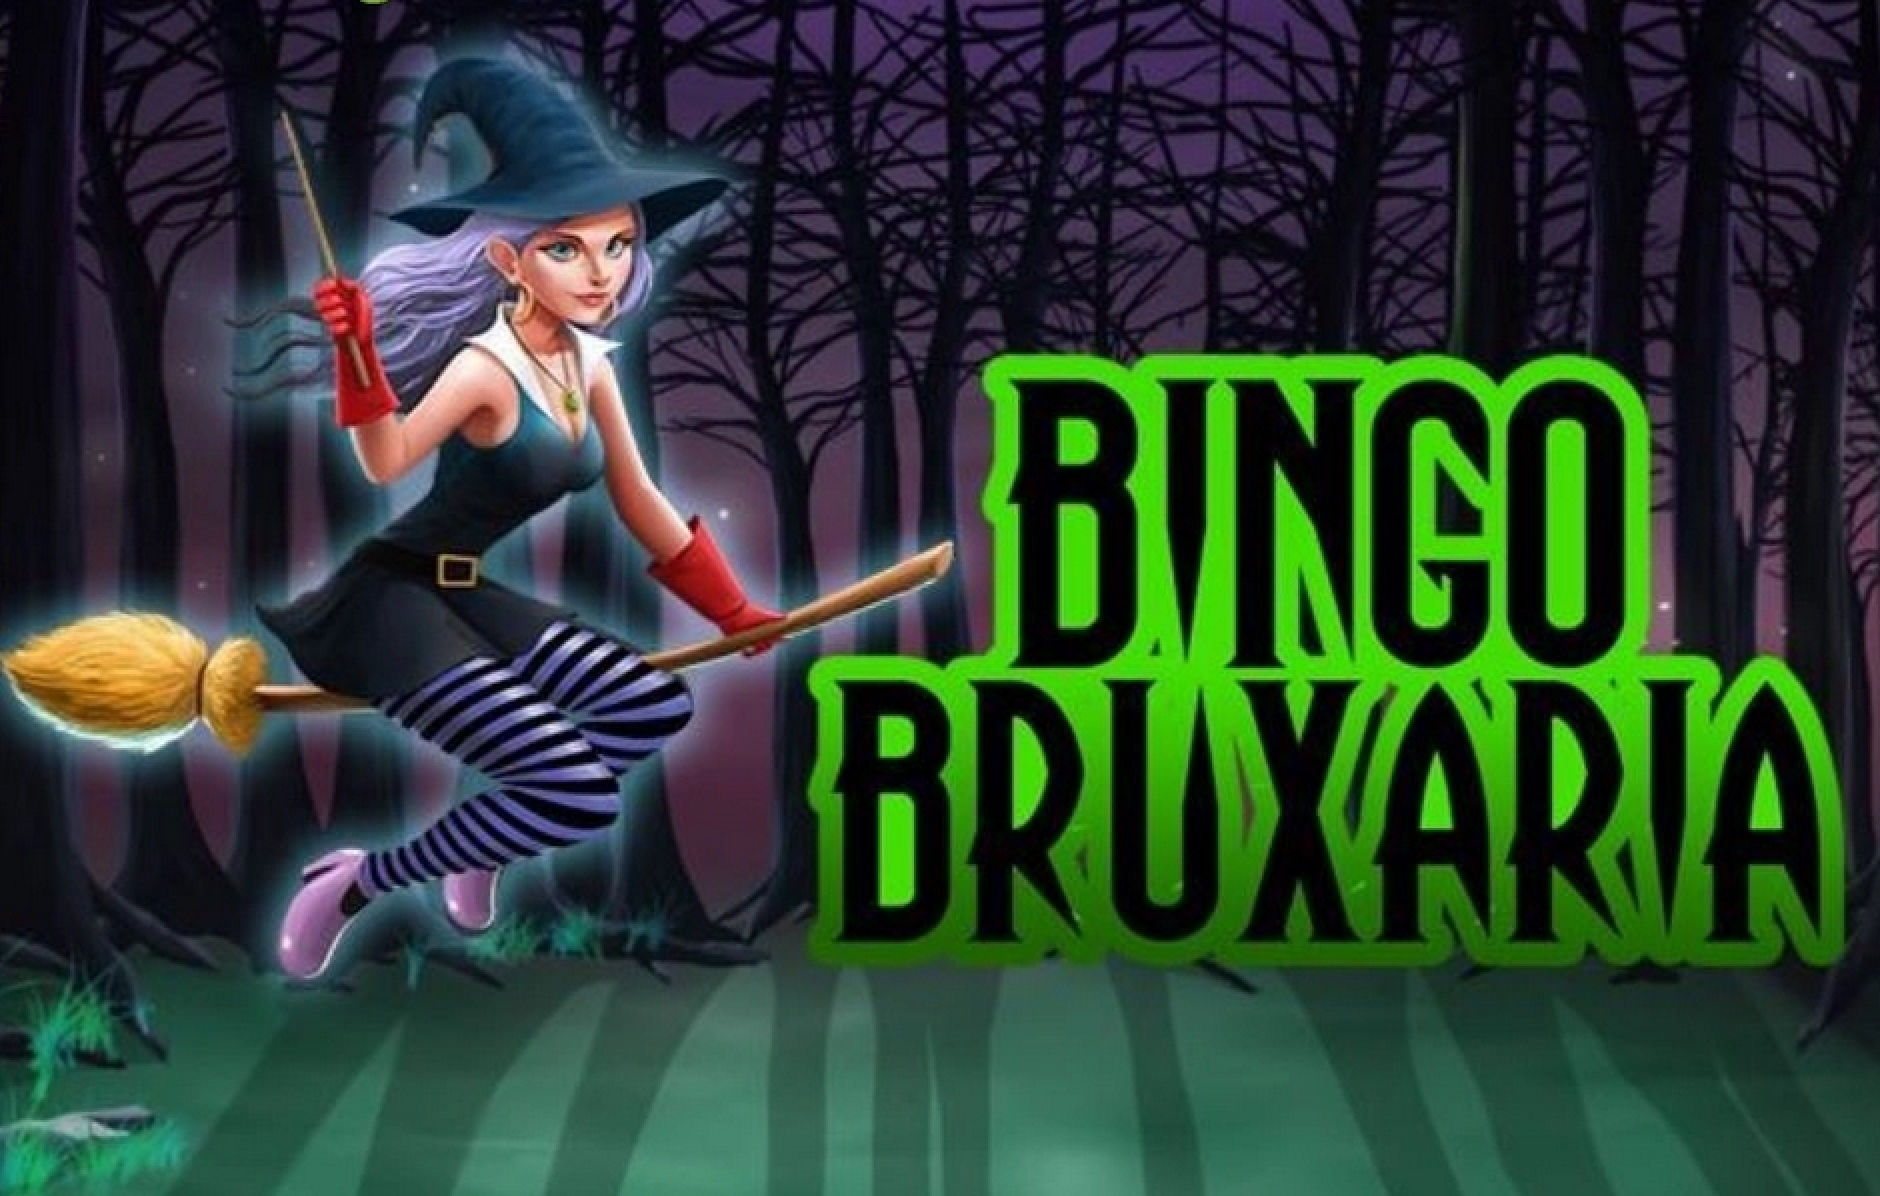 Se Bingo Bruxaria Online Slot Demo Game, Caleta Gaming